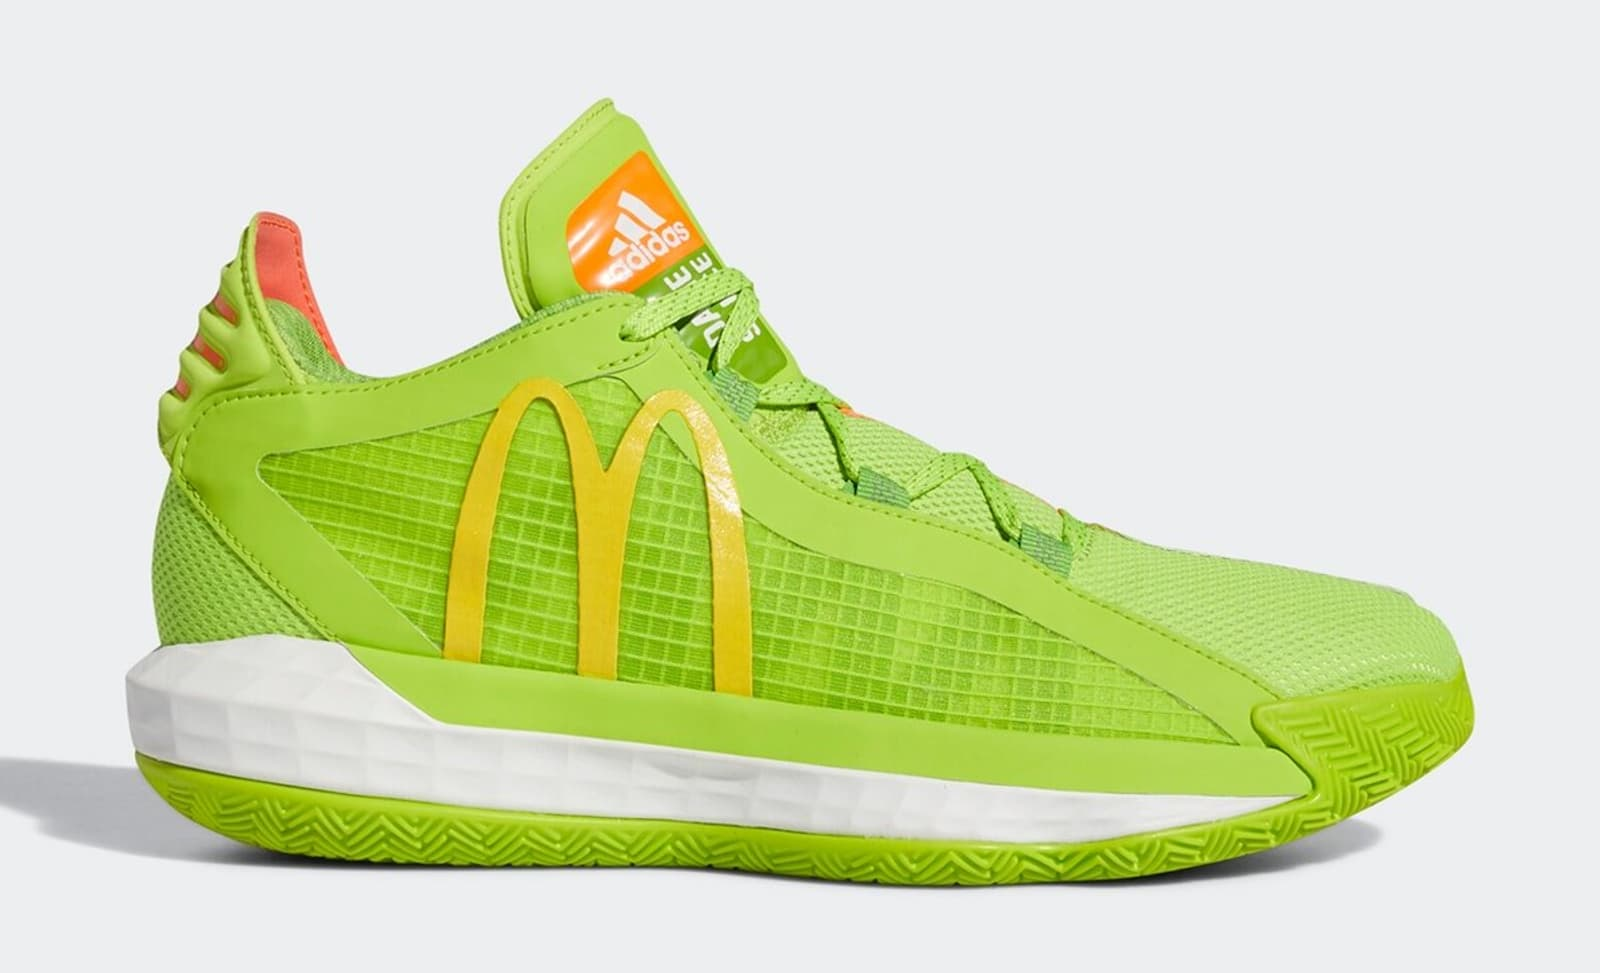 Damian Lillard's Adidas Dame 6 Receives McDonald's Colorway